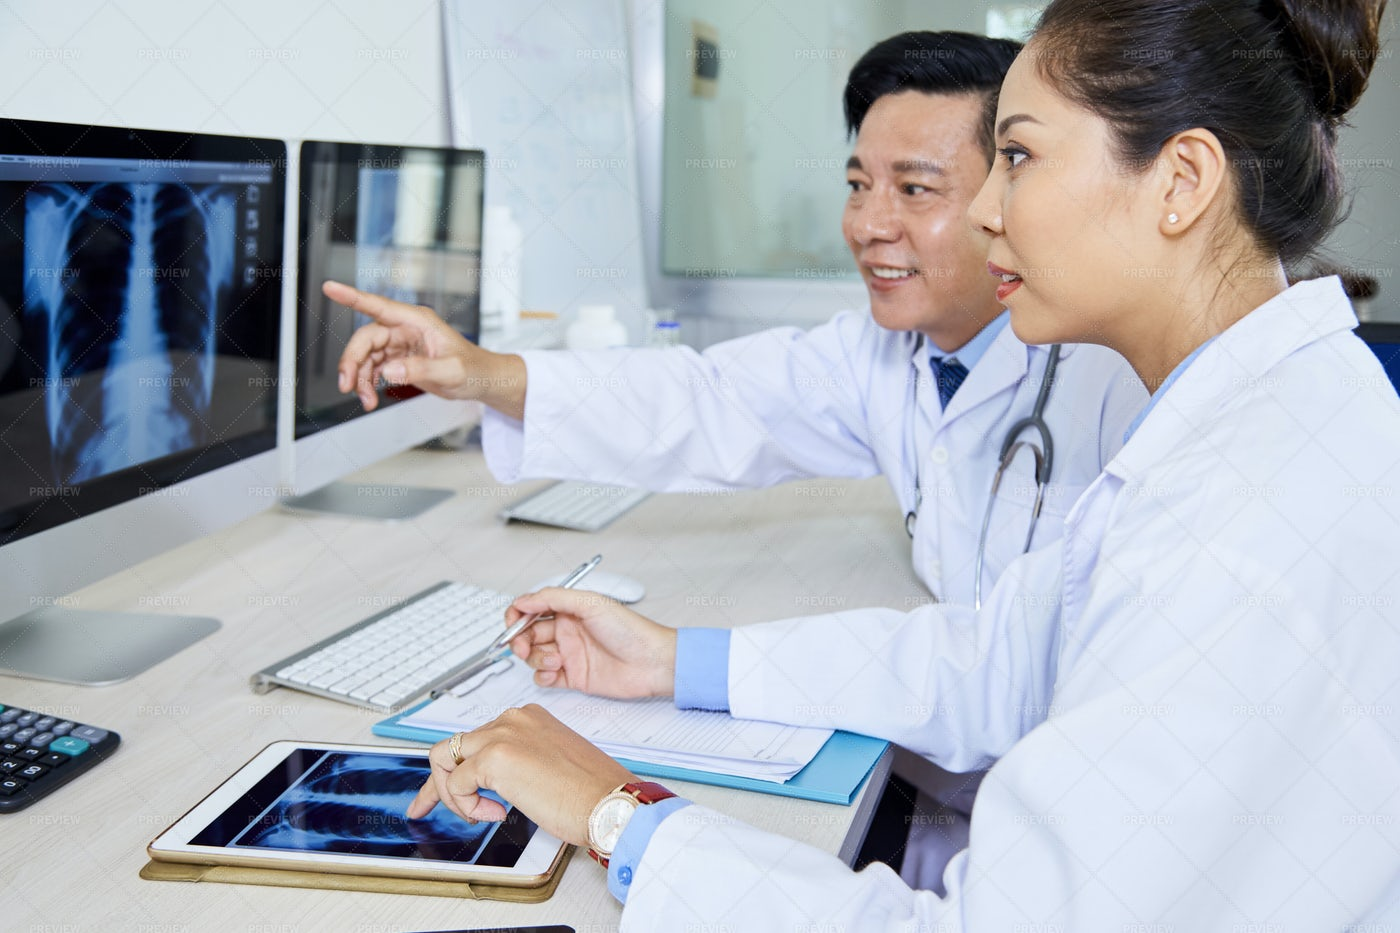 Couple Of Doctors Discussing X-ray: Stock Photos